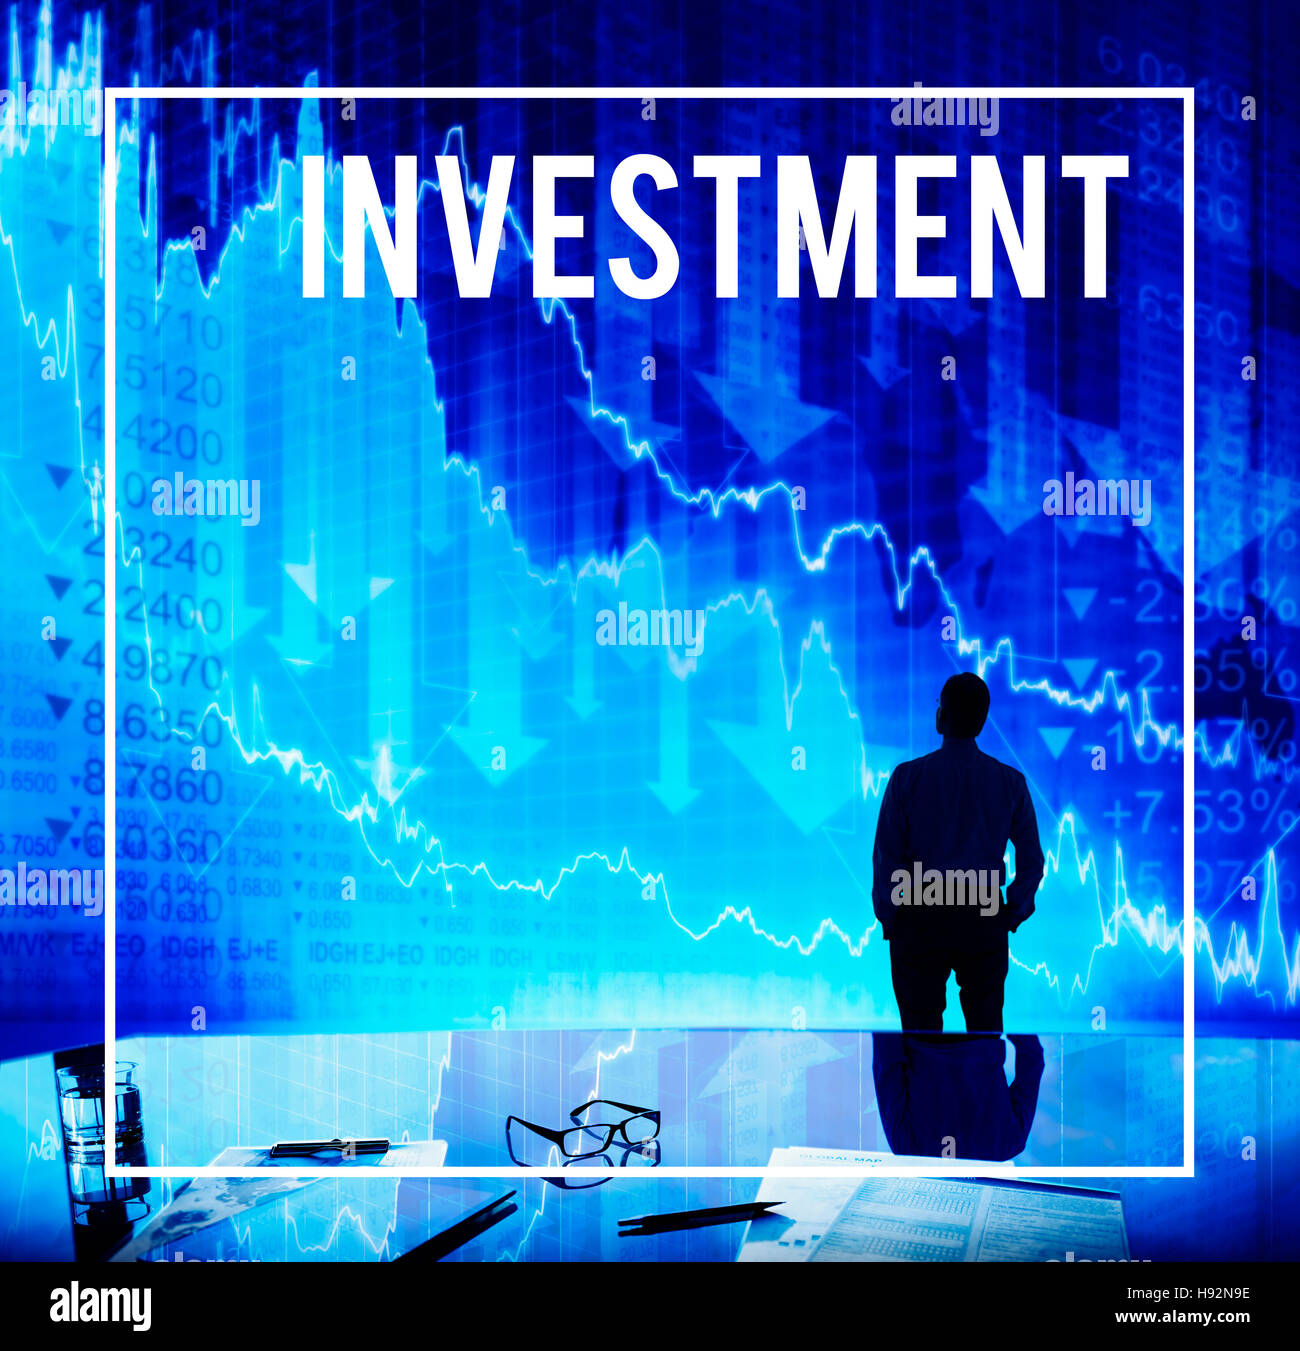 Investment Invest Finance Money Budget Concept - Stock Image